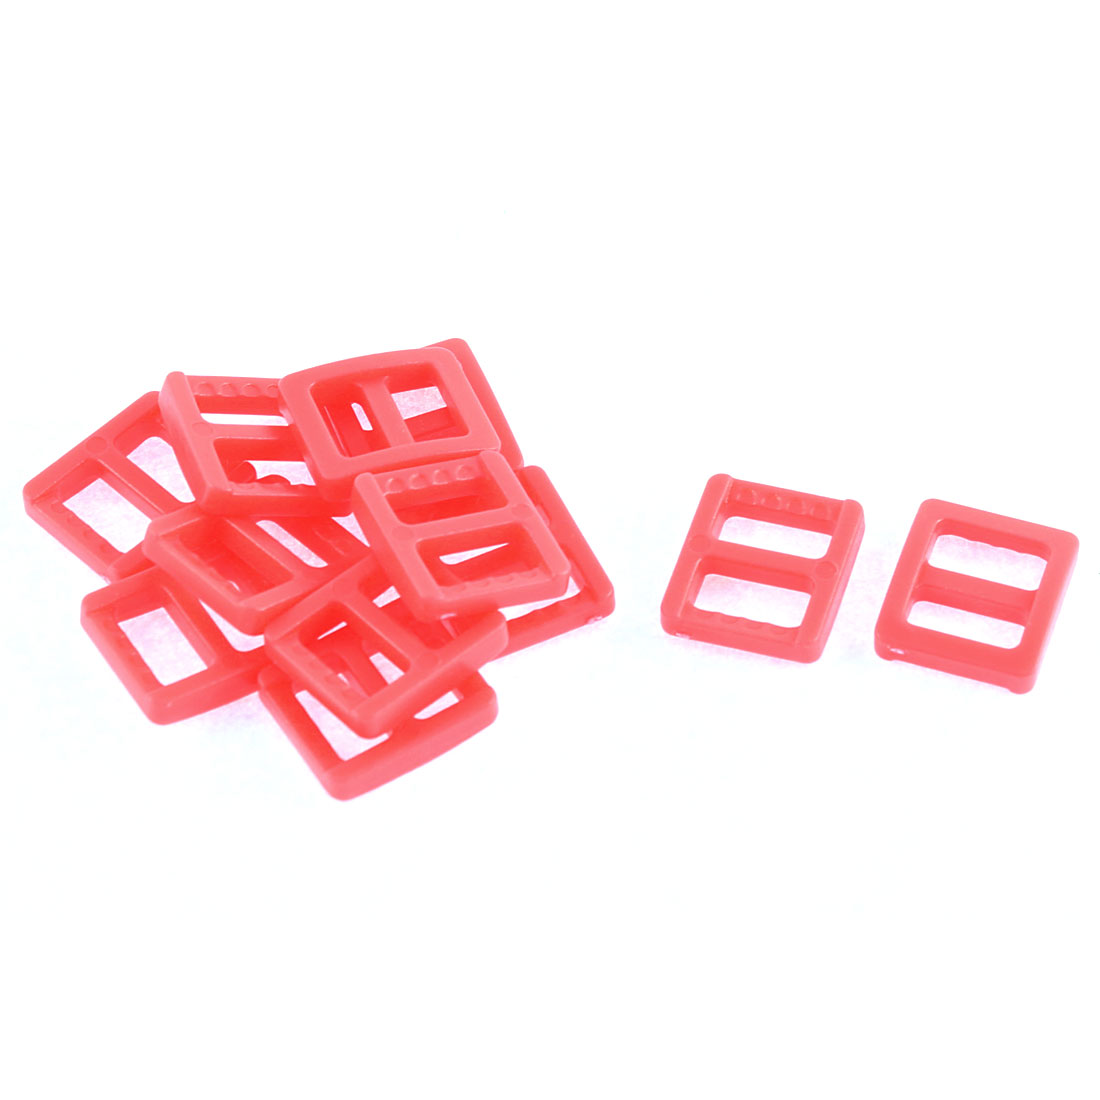 Webbing Bag Plastic Replacement Tri Glide Buckle Strap Keeper Coral Pink 12 Pcs